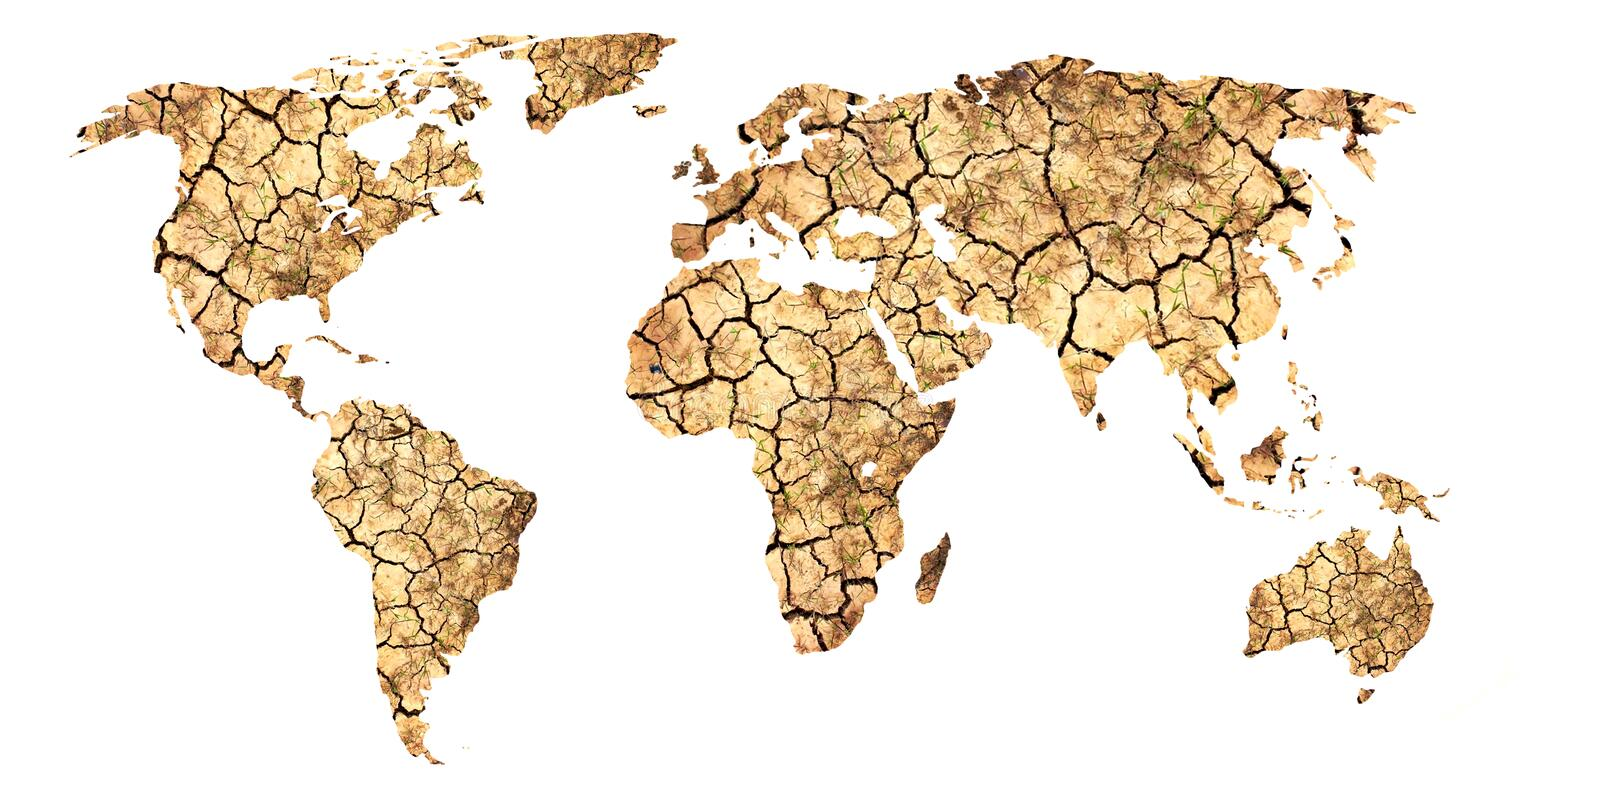 Global warming. The dried-up earth of continents. stock images